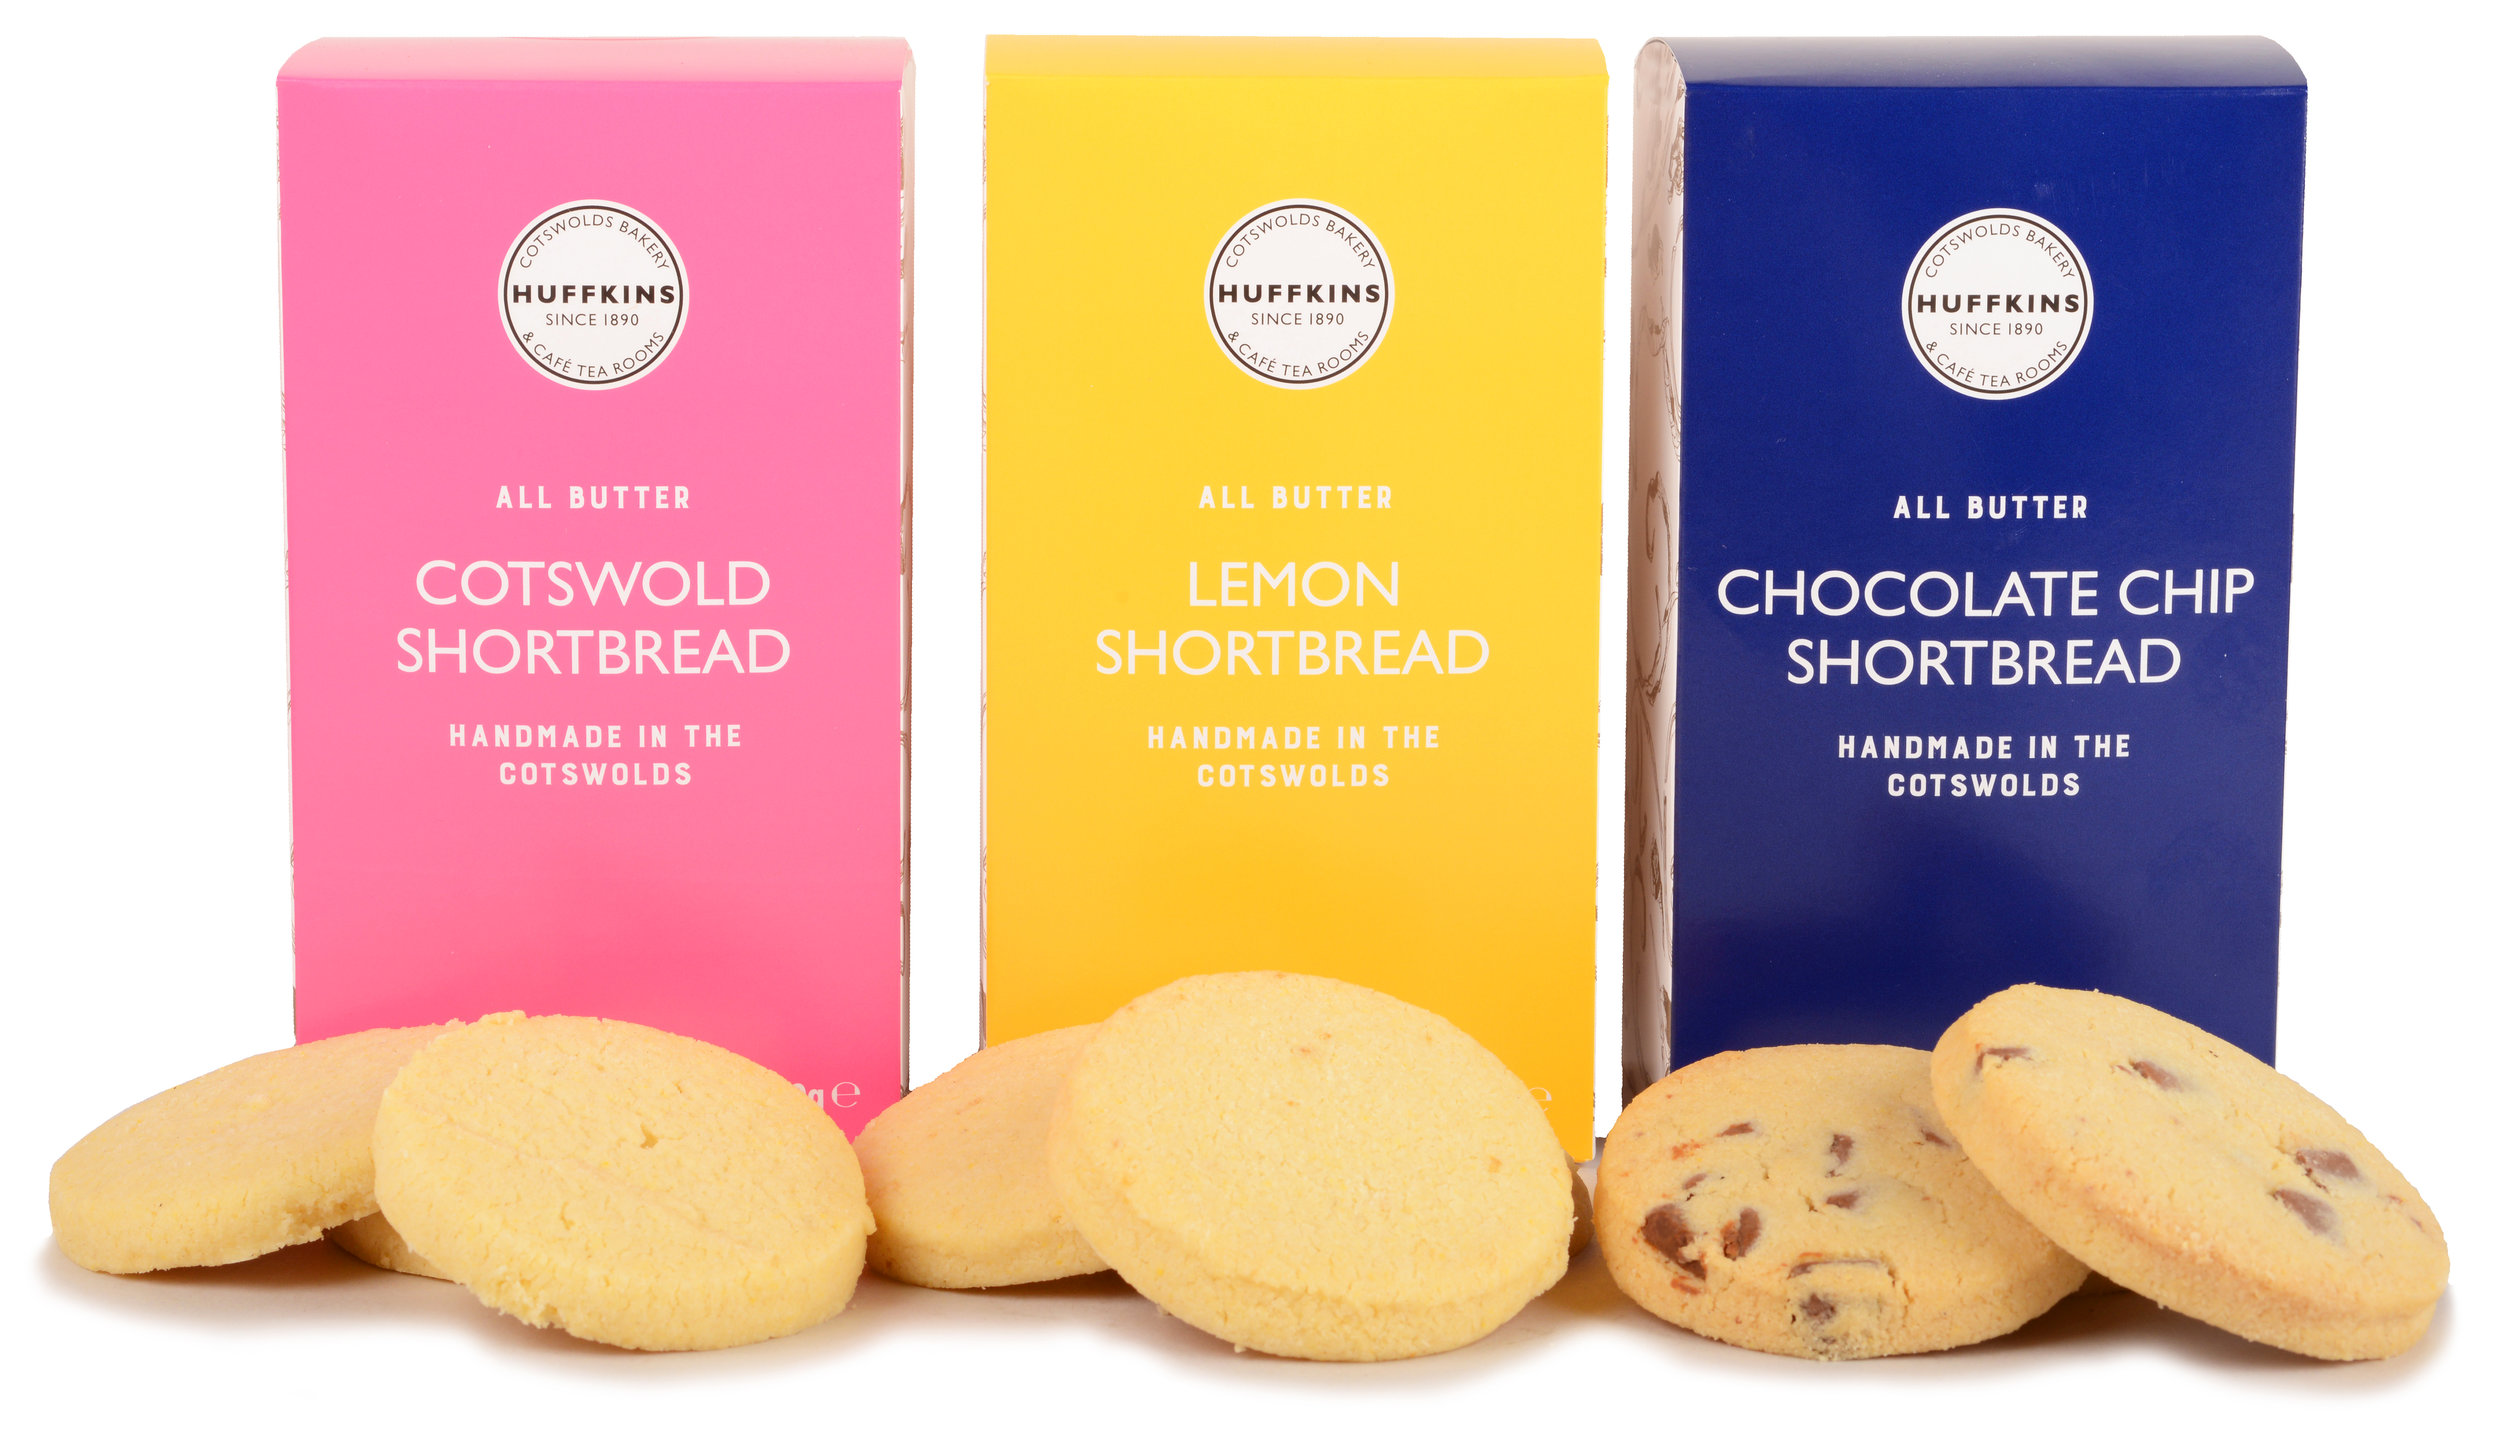 Bestsellers - our most popular handmade biscuits